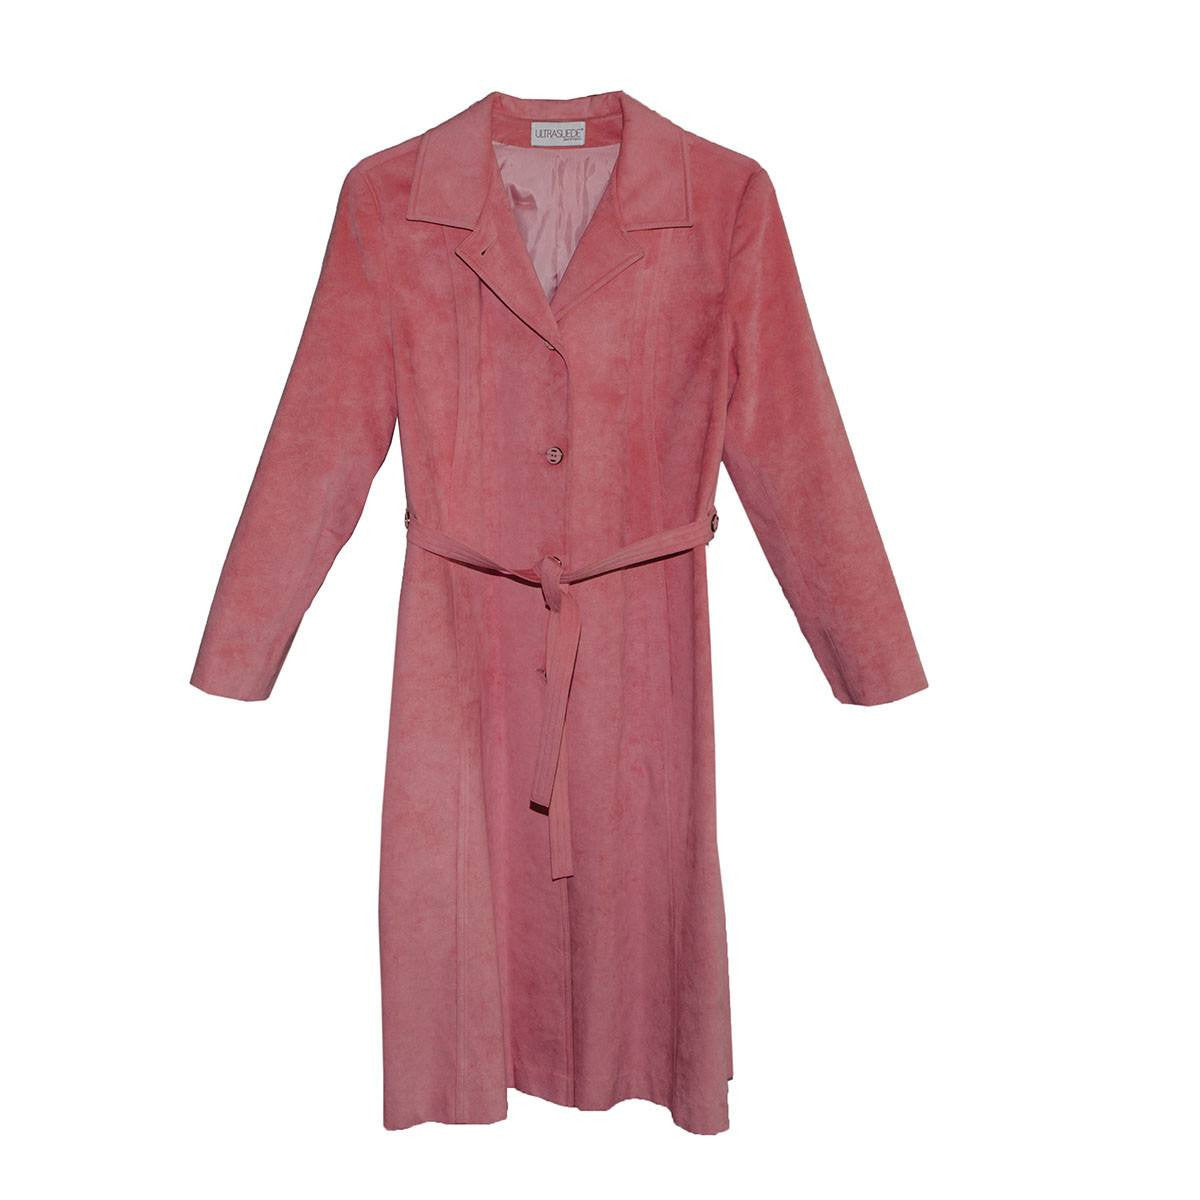 Vintage 1970s Ultrasuede Trench Coat, Salmon Pink, Matching Belt